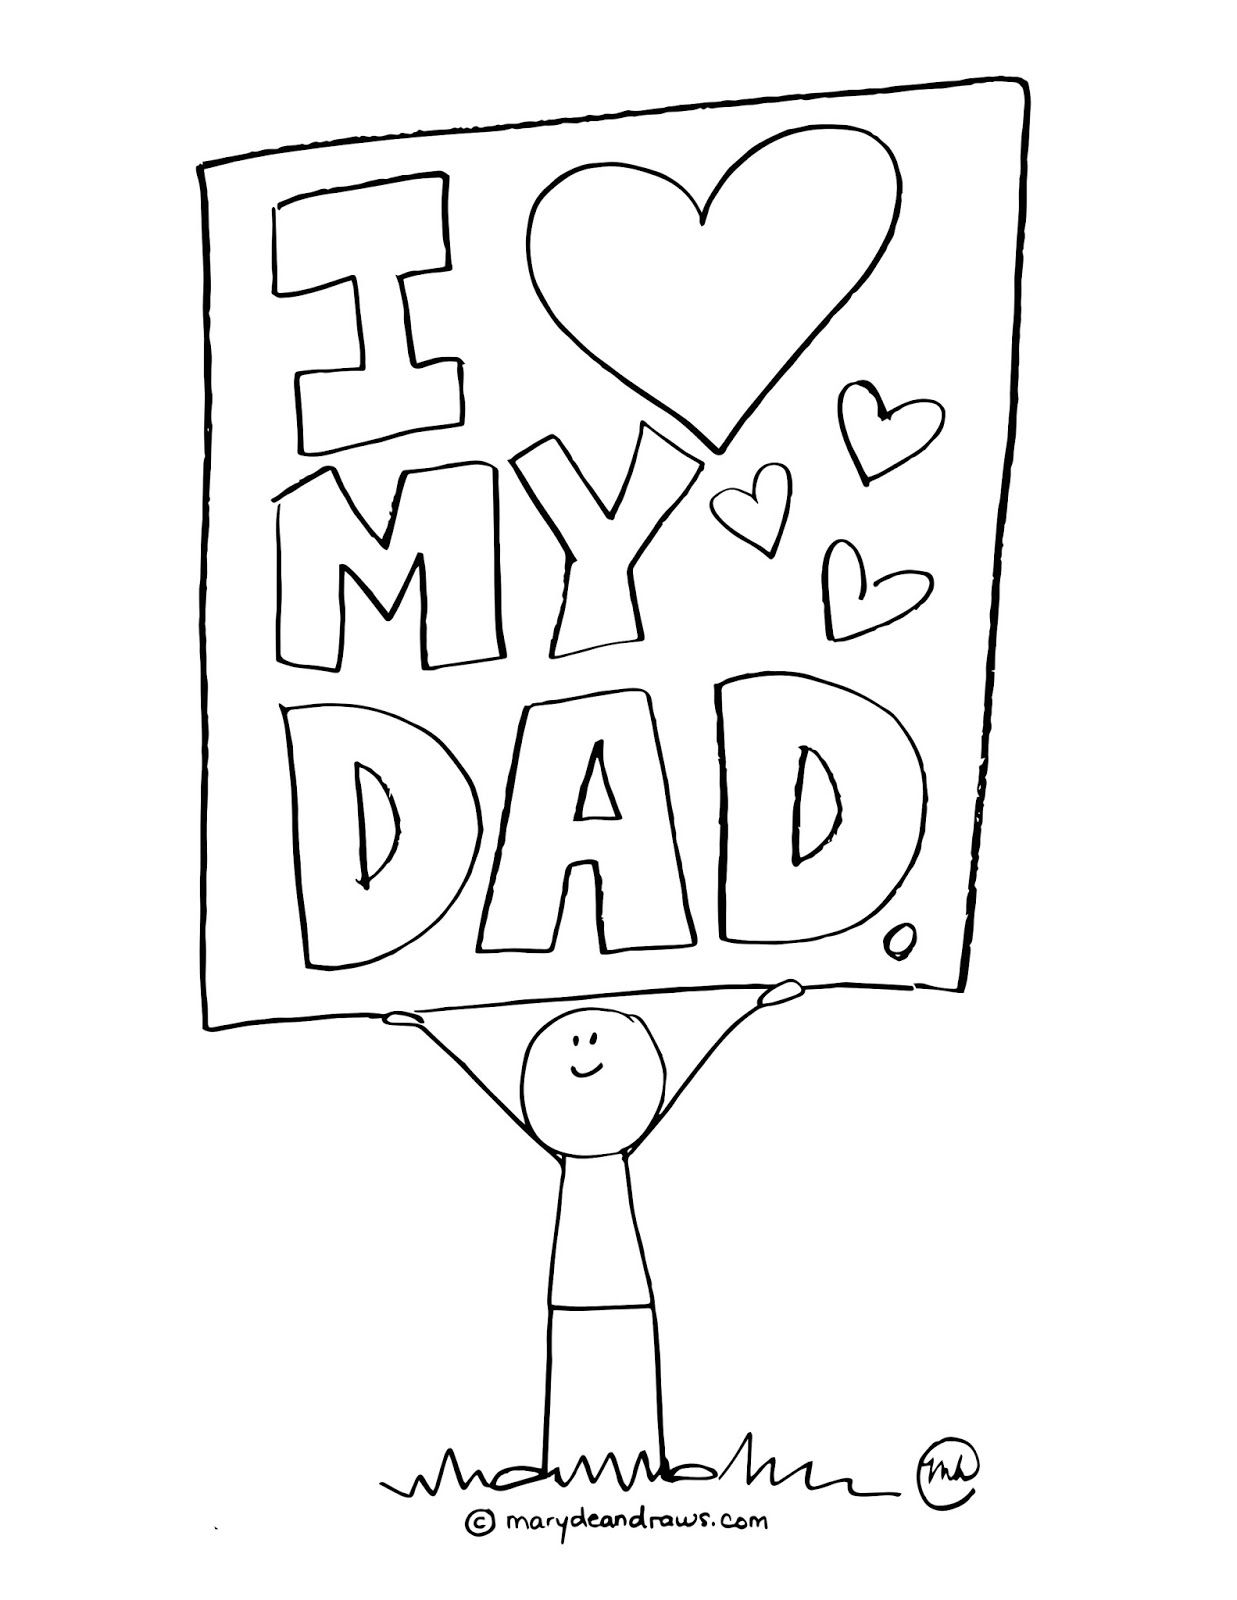 father's day printable coloring page Father's day